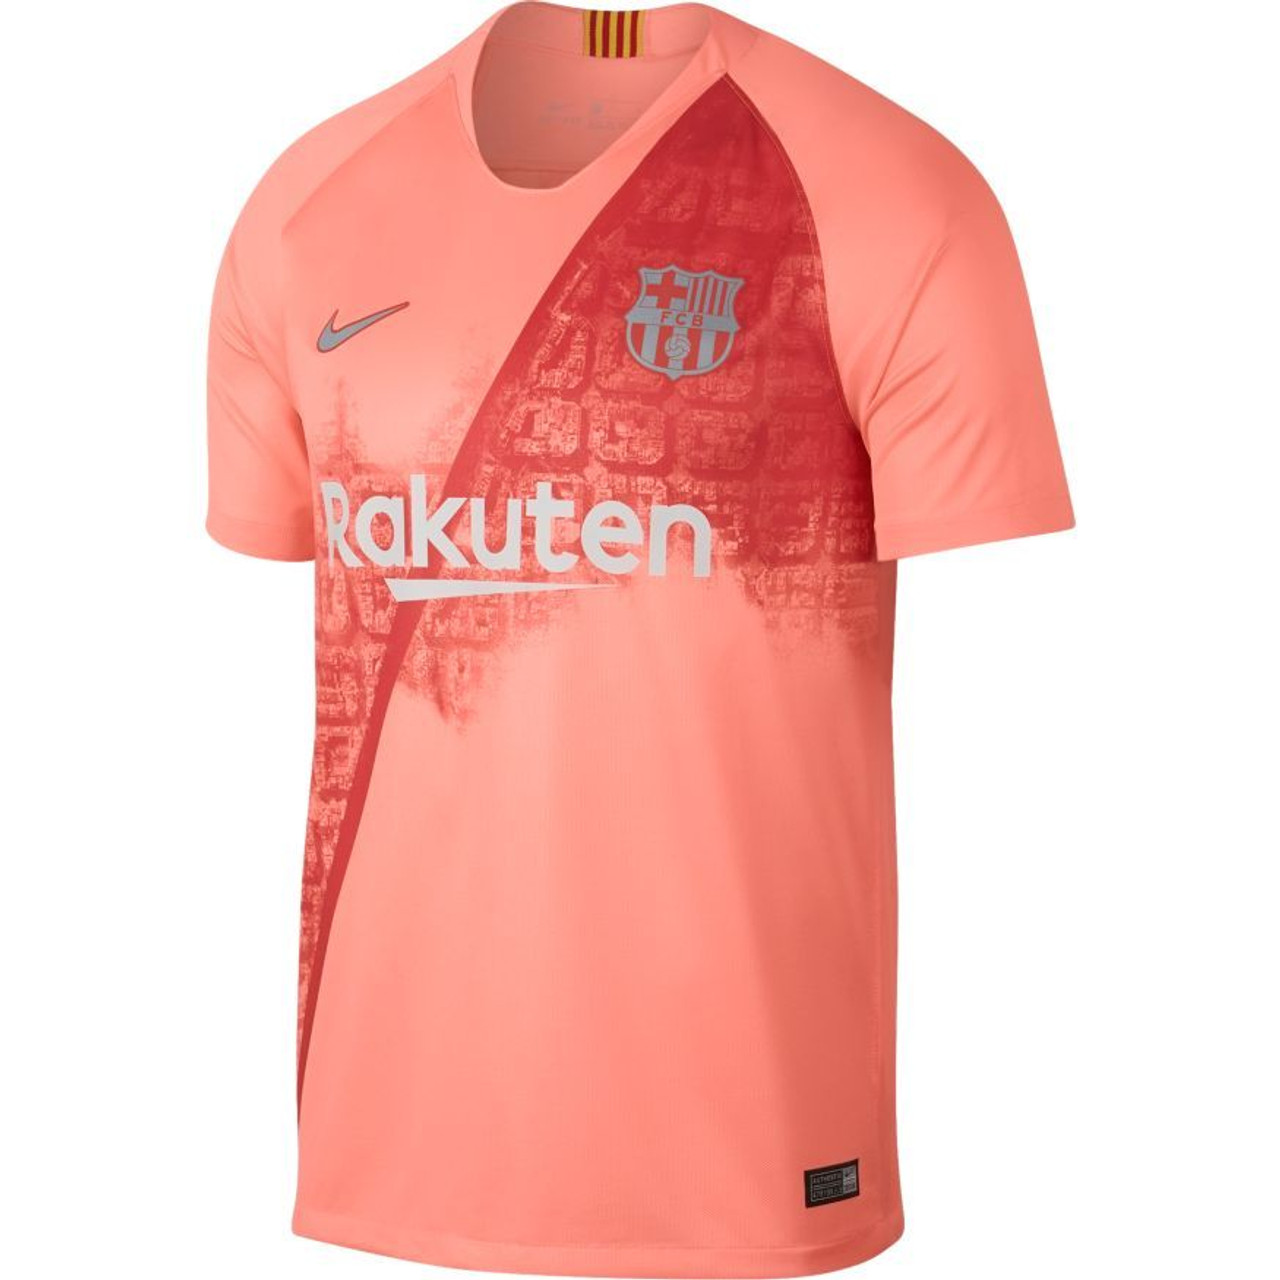 8436a675c00a Nike F.C Barcelona Third Jersey 18 19 - Light Atomic Pink Silver (031319) -  ohp soccer